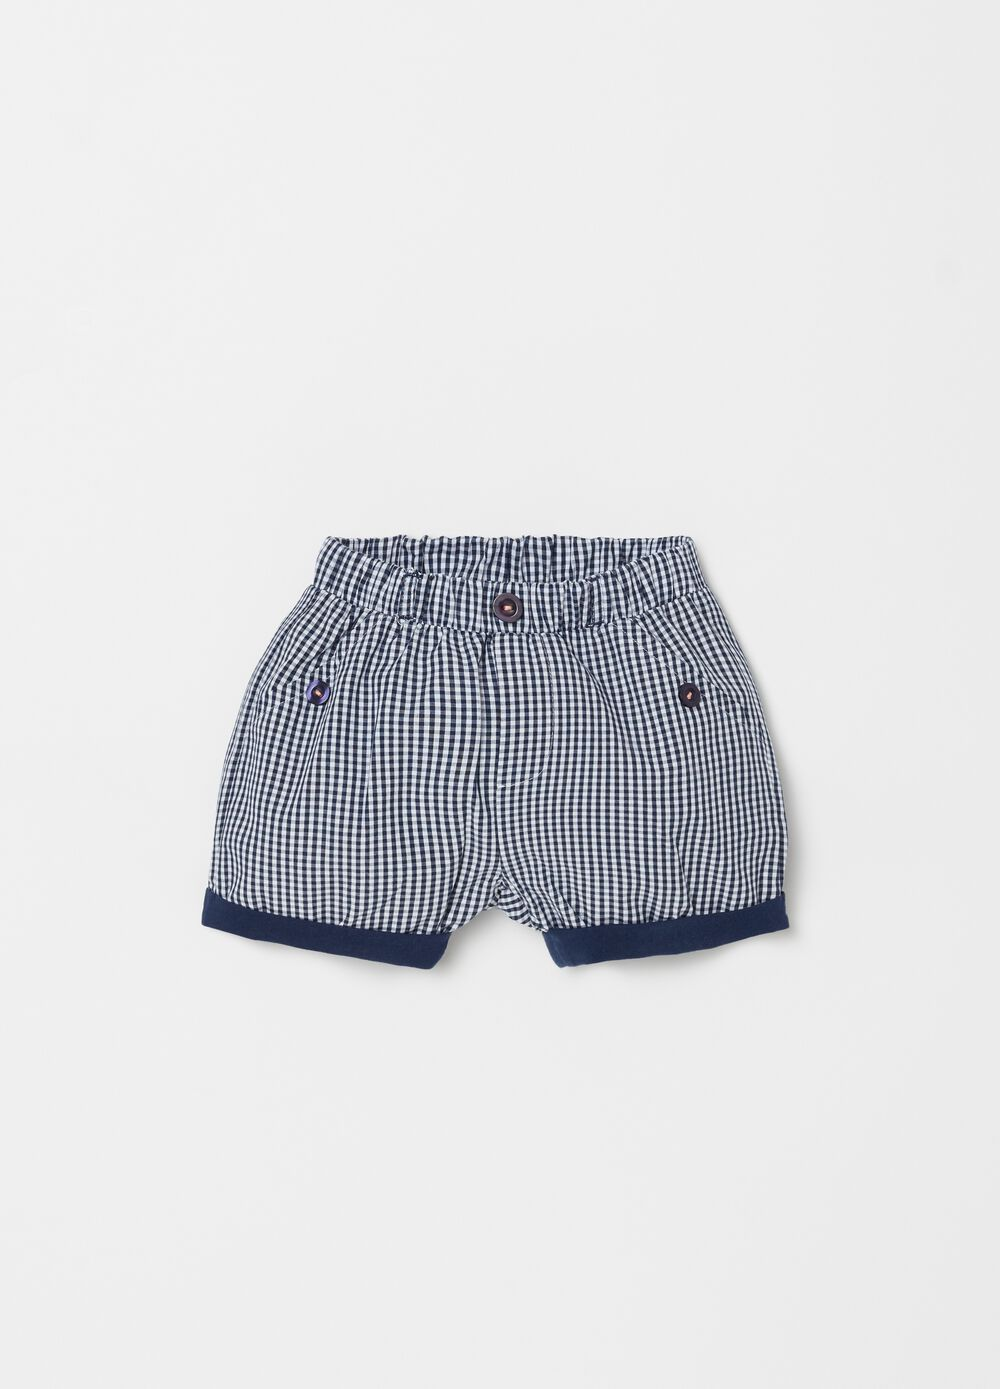 100% cotton micro check shorts with pockets